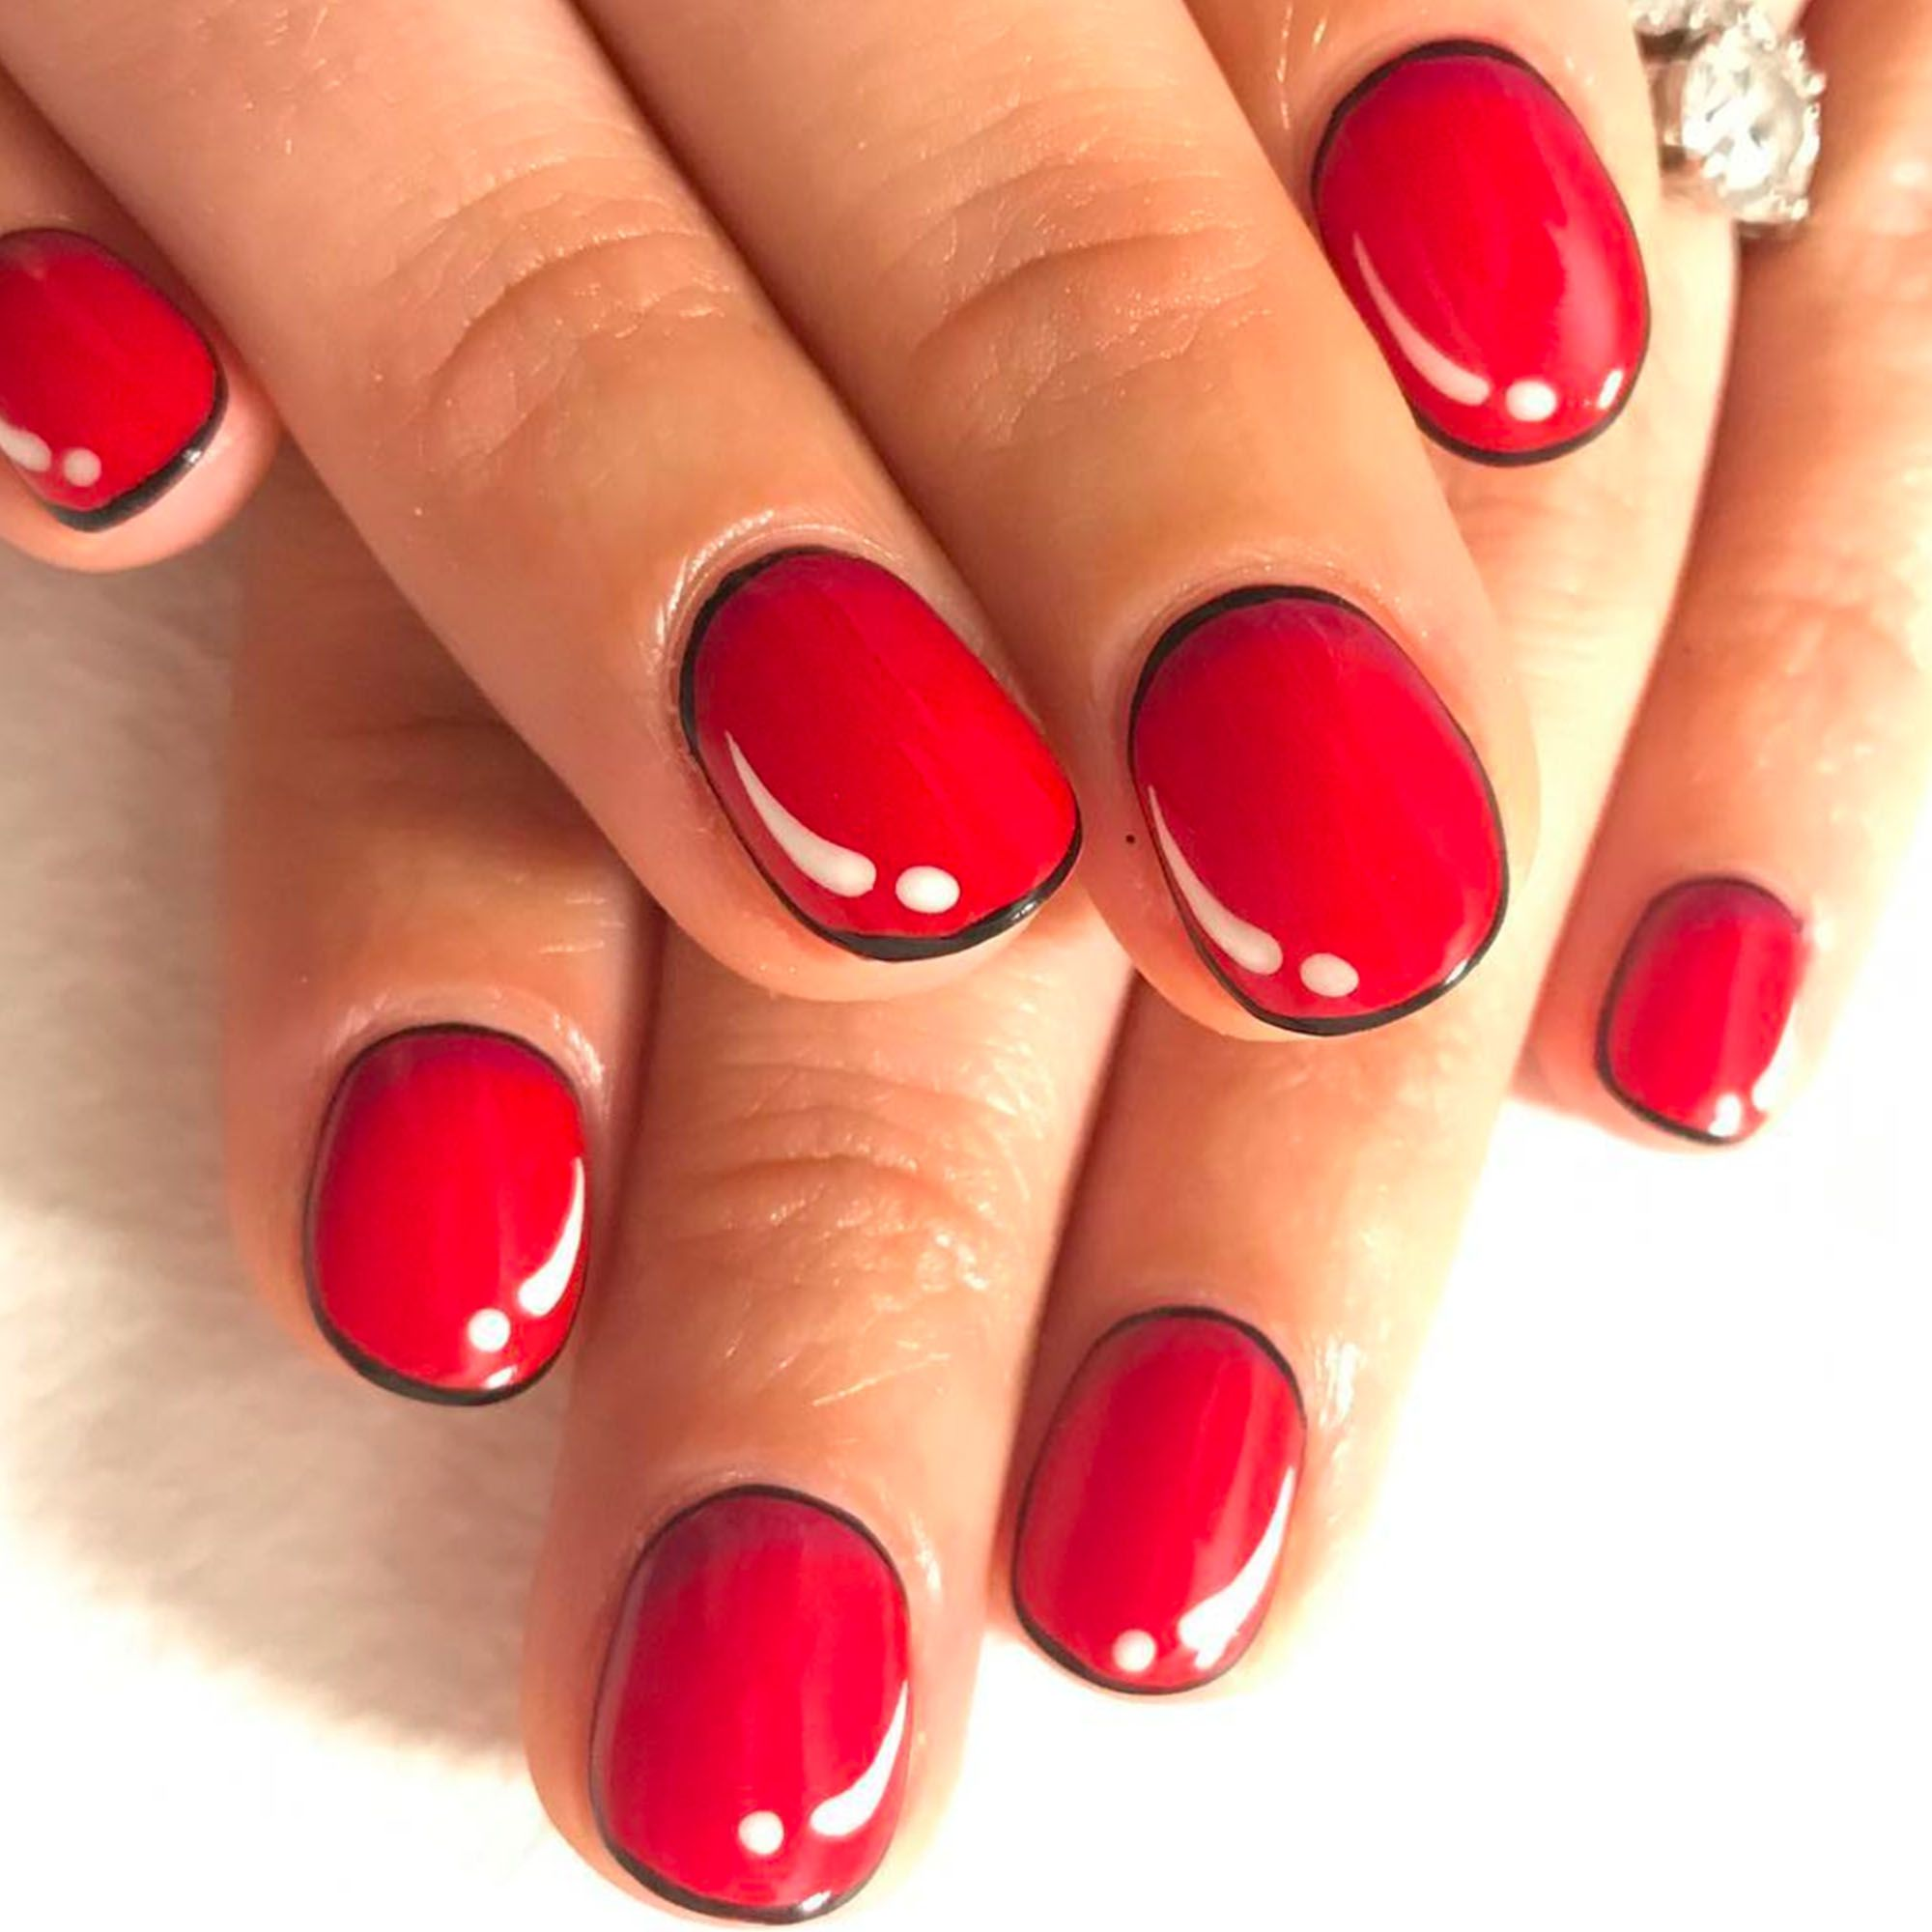 Nails Red: Cute Nail Art Ideas For A Red